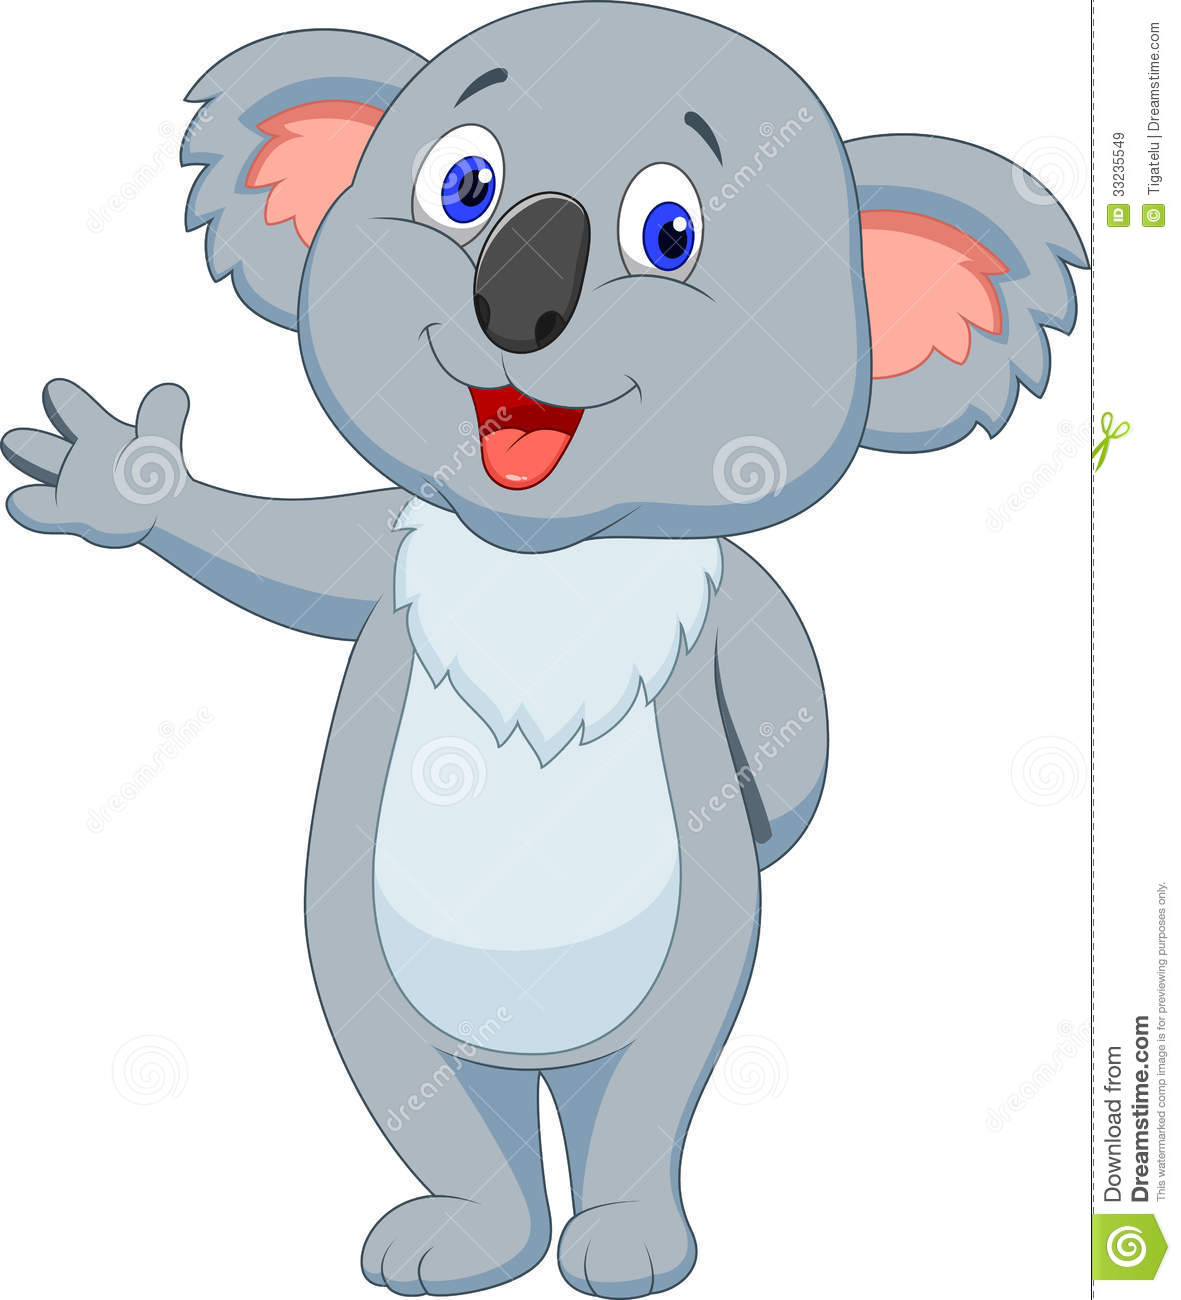 cute koala cartoon hand waving royalty free stock images image